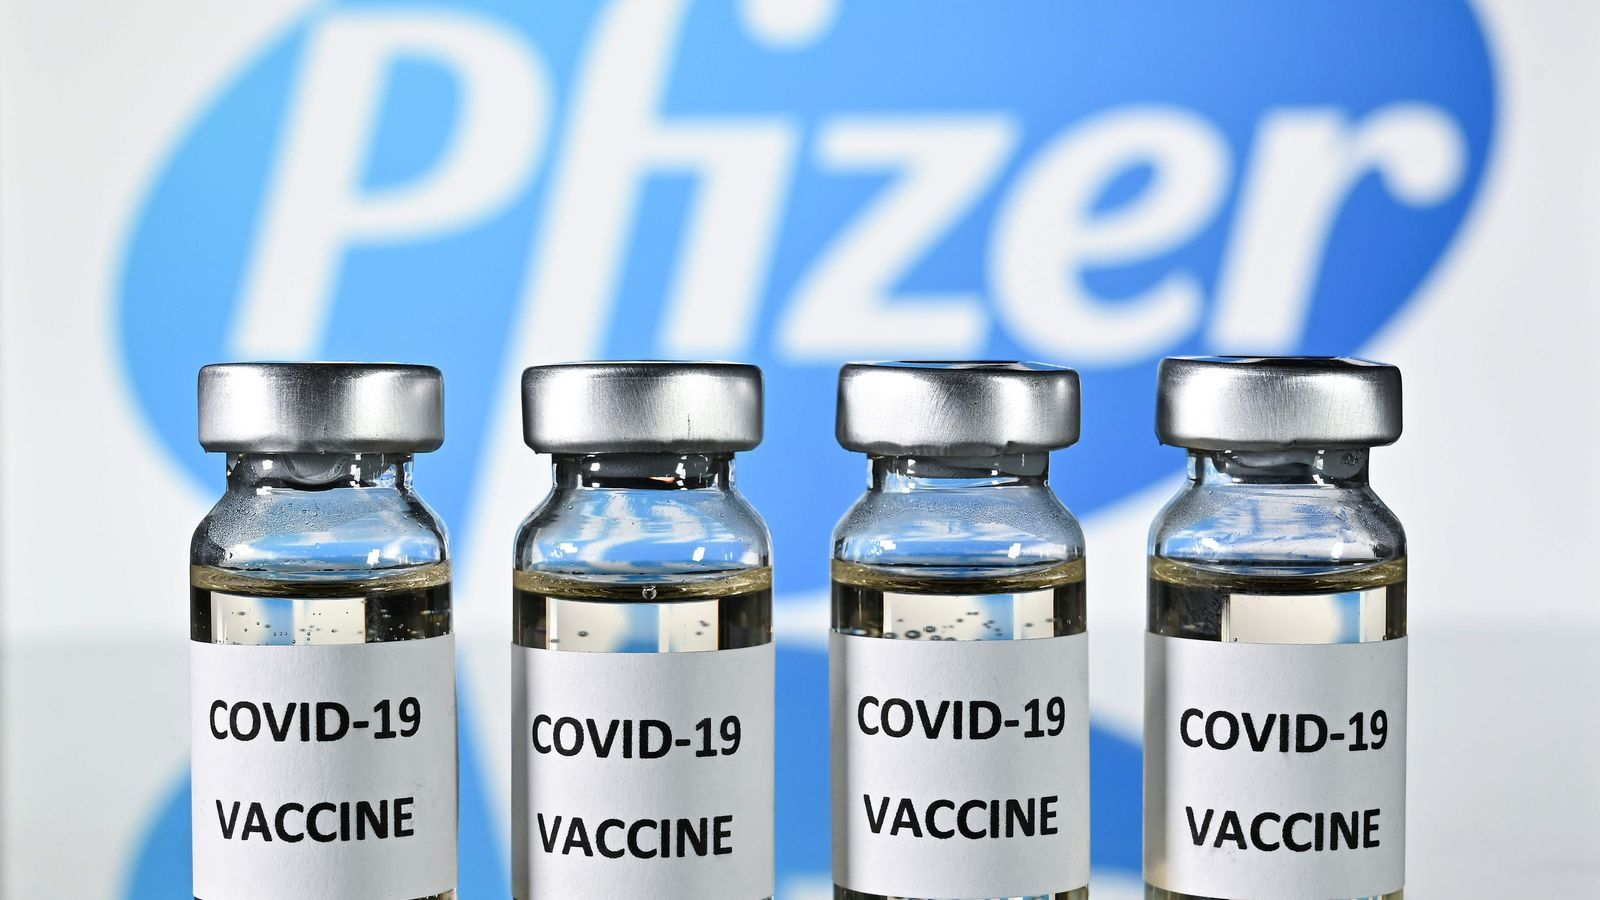 Pfizer now says its vaccine is 95% effective